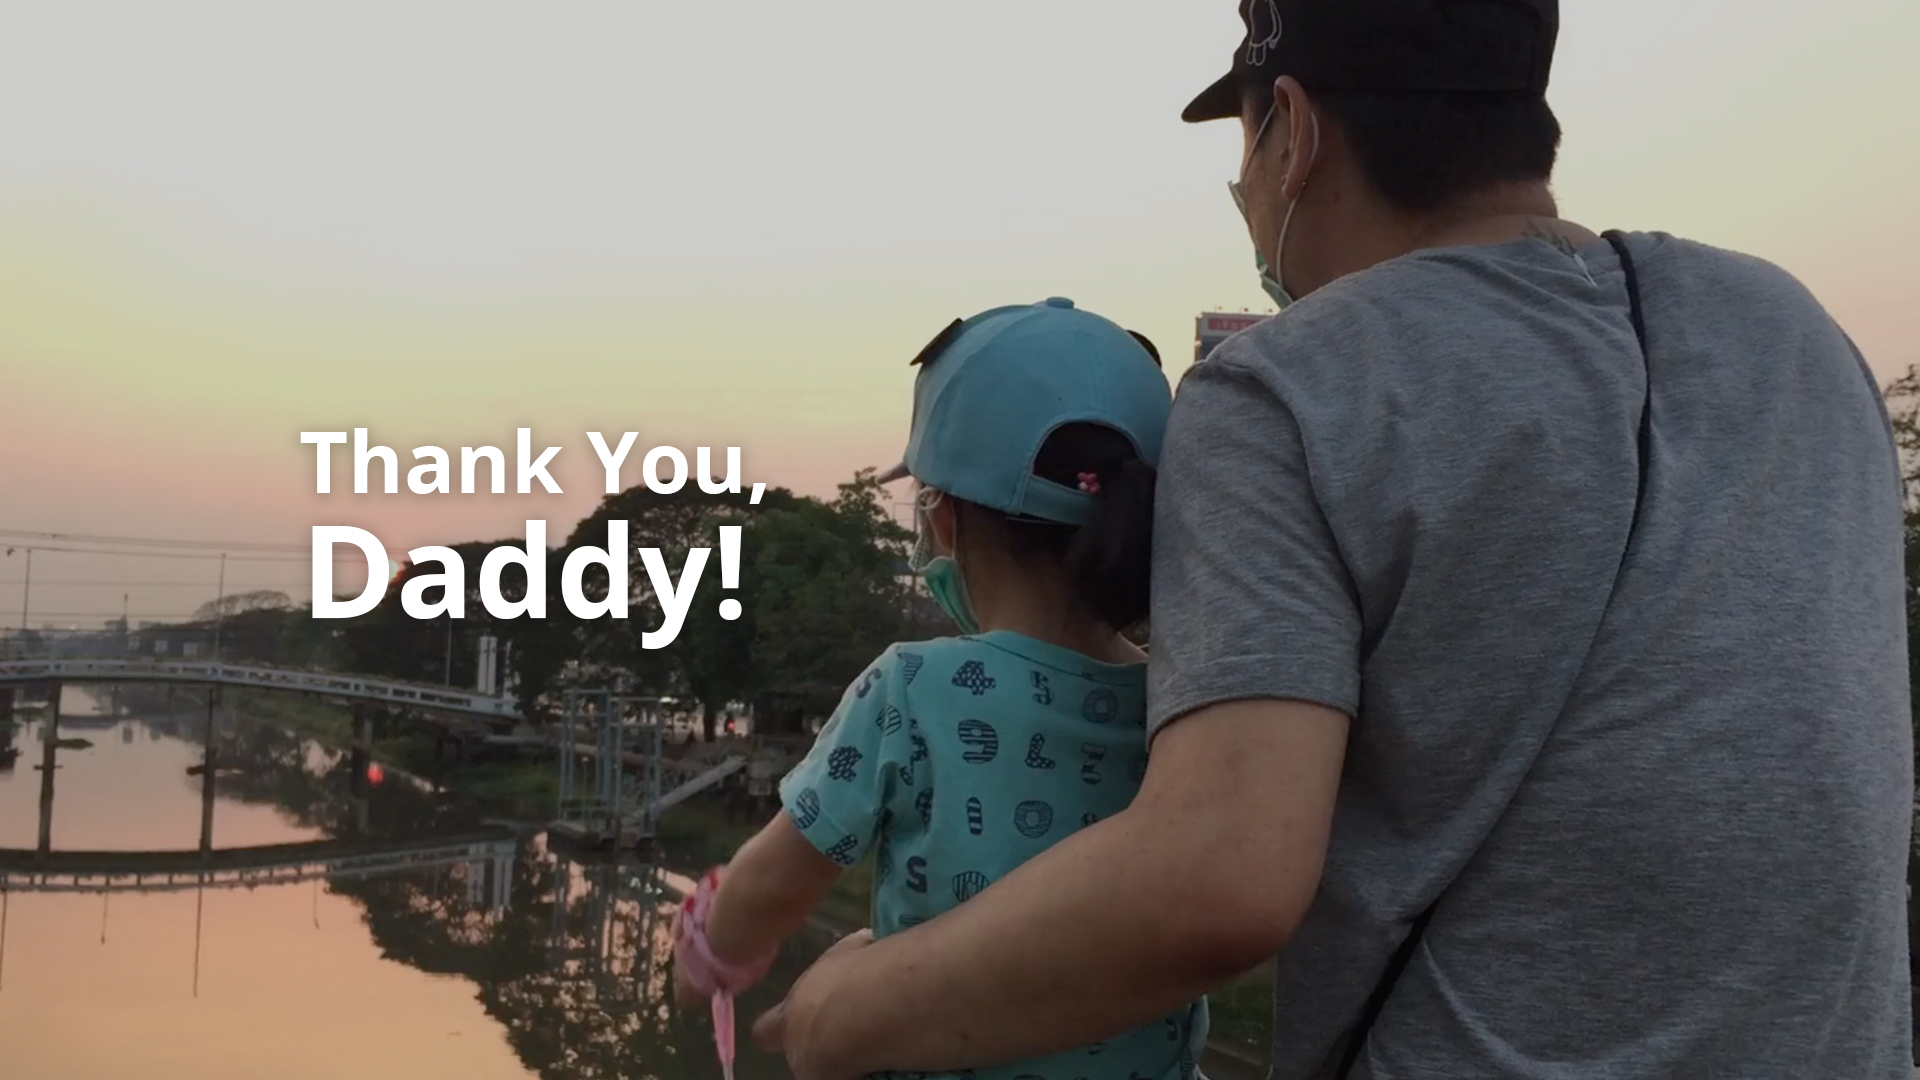 Thank You, Daddy! 孝 – Happy Father's Day from MEC